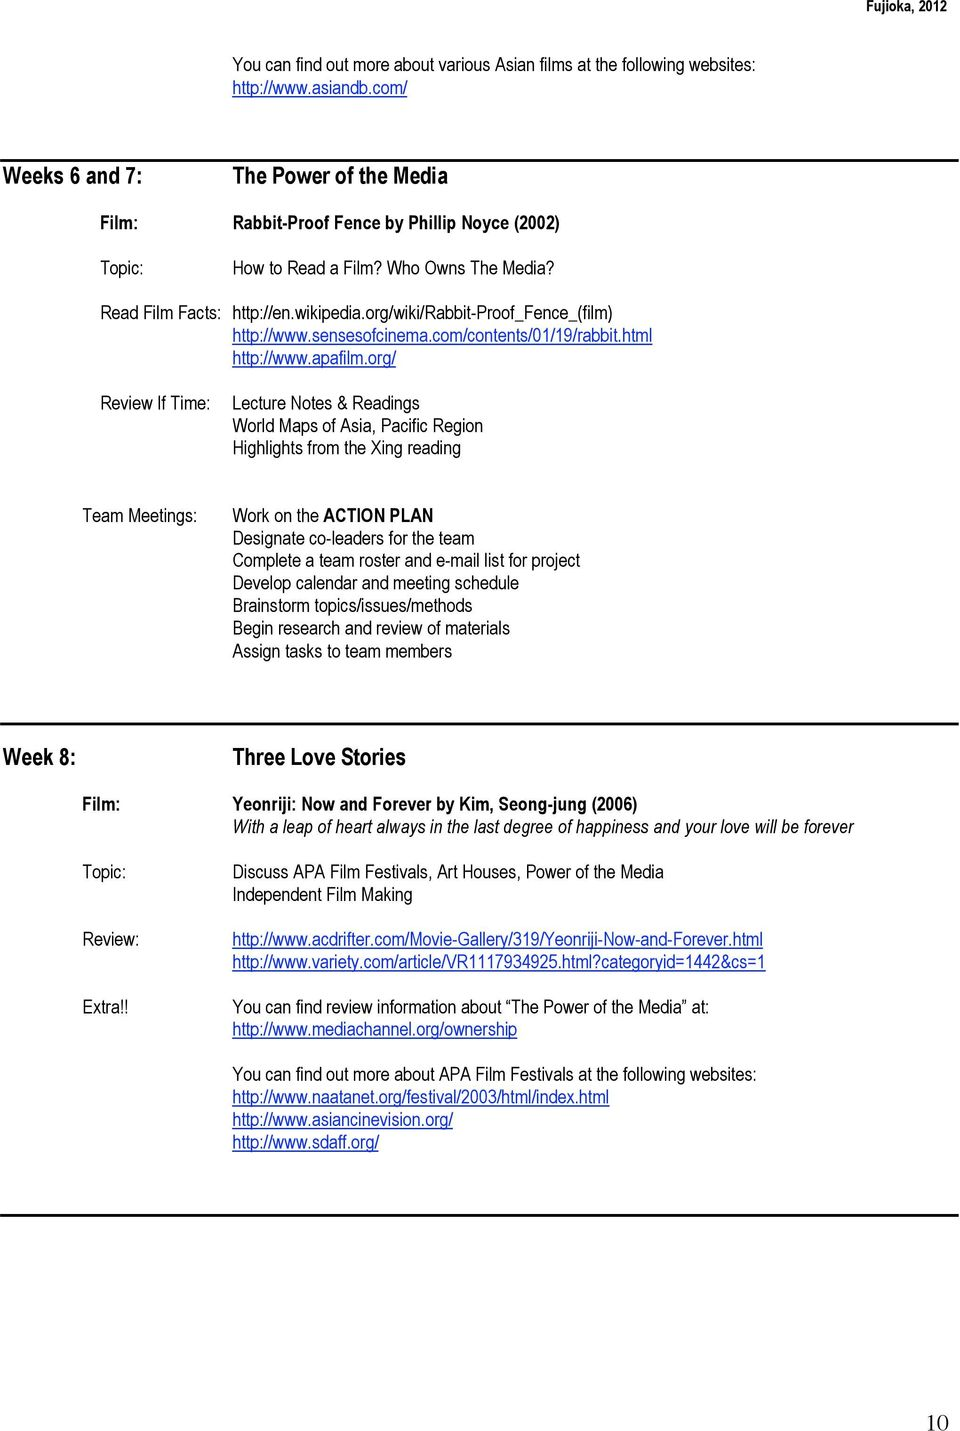 Asame 30 asians and asian americans through film 2012 fall semester orgwikirabbit prooffencefilm http fandeluxe Gallery